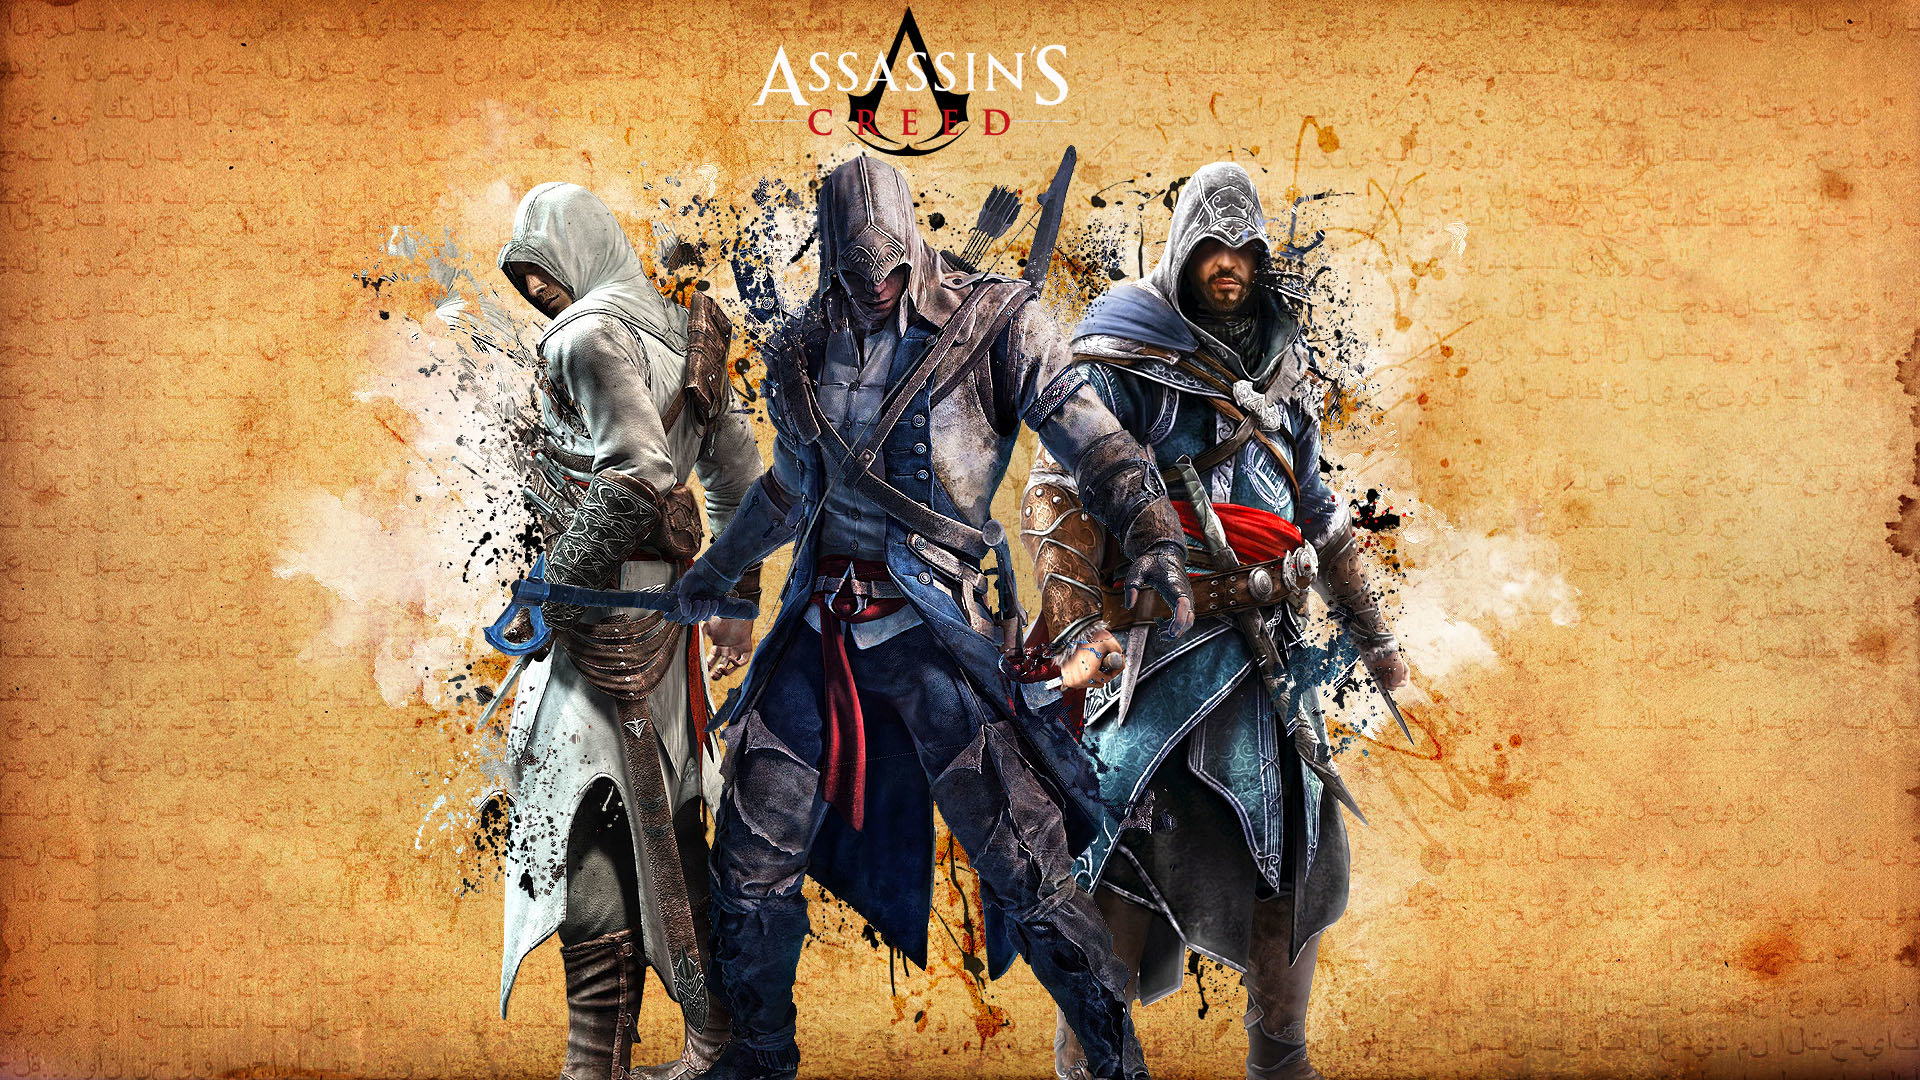 Free download Assassin's Creed wallpaper ID:188210 1080p for desktop